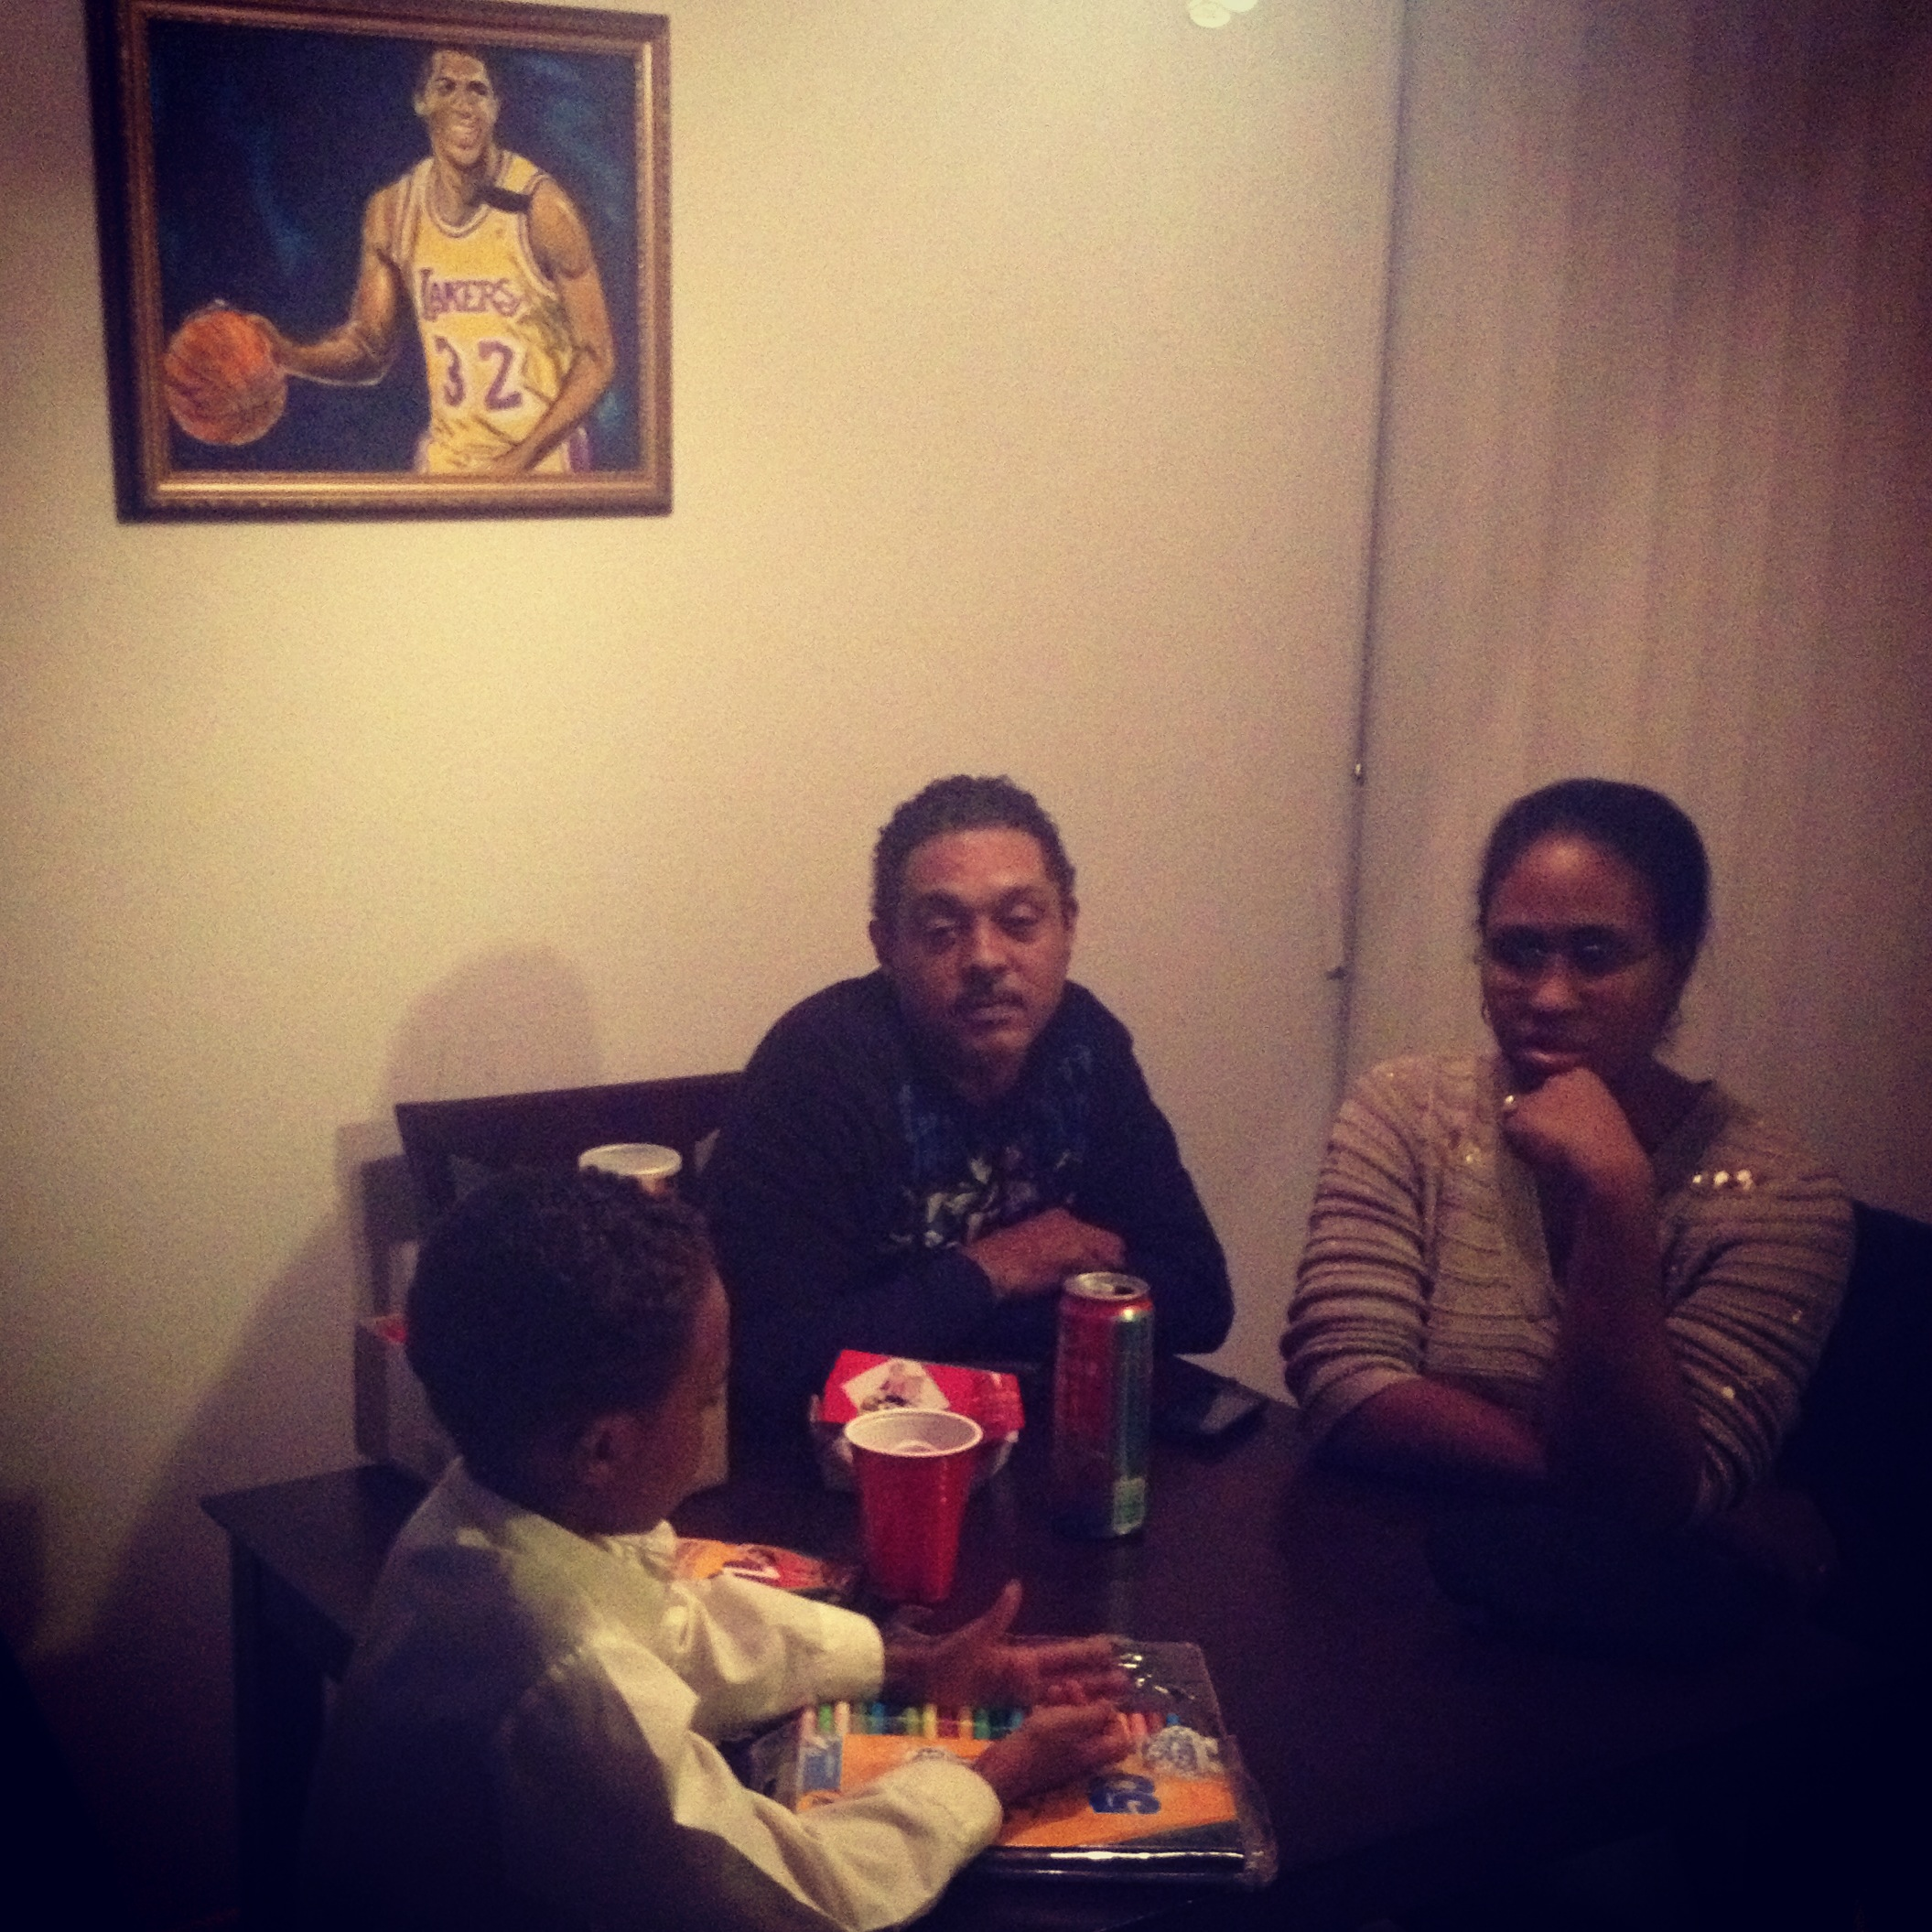 The true magic... Family time, we was raised off Showtime.